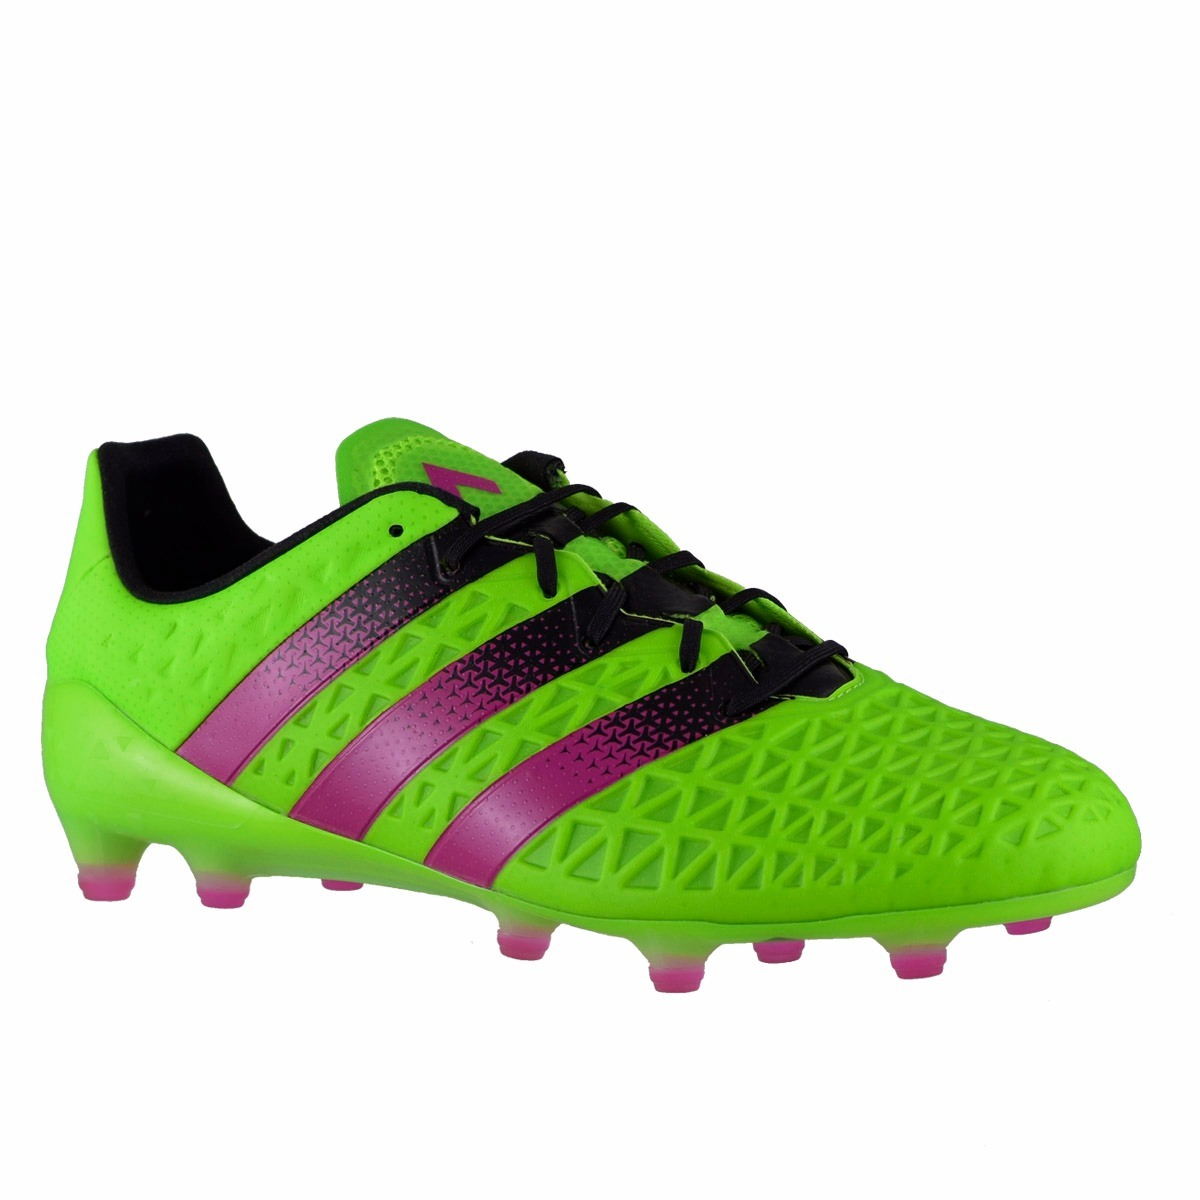 the best attitude 06aaf 4c652 ... purchase botines adidas ace 16.1 suelo firme hombre verde. cargando  zoom. cf931 bb766 get adidas ace 16 purecontrol fg ag laceless solar shock  core ...